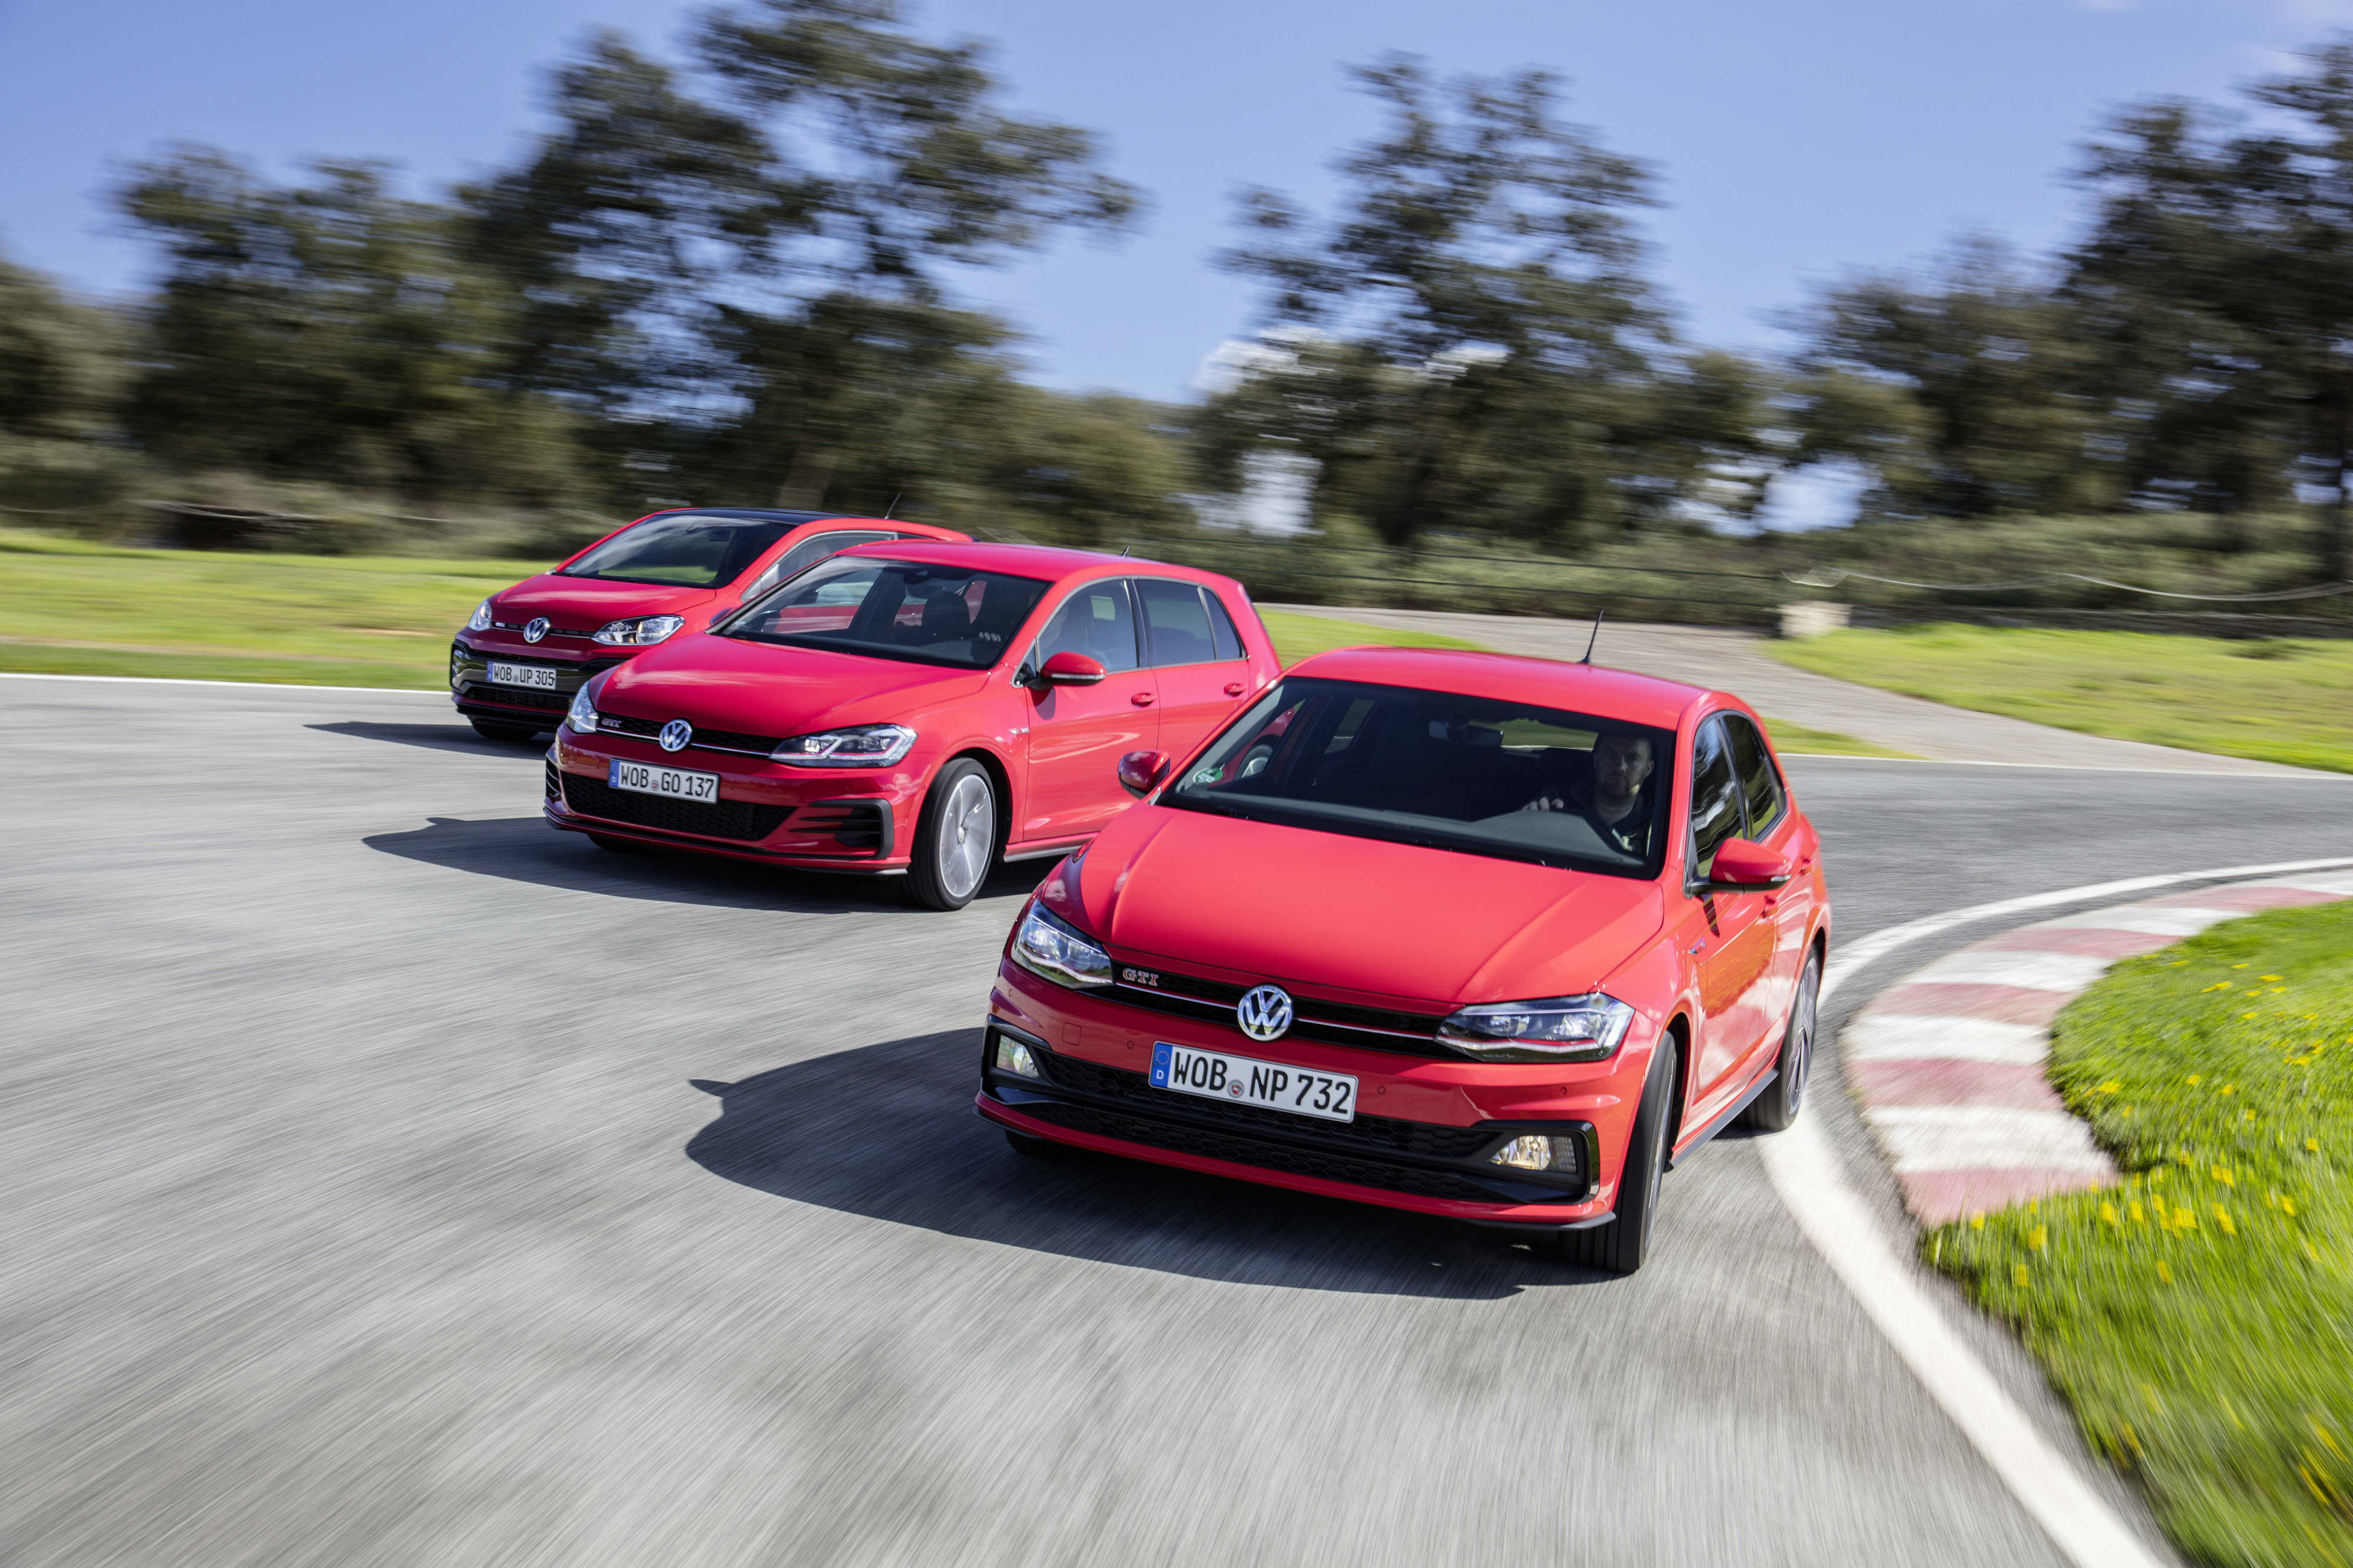 VW partners with navigation app to offer driving delights on some of the UK's finest driving roads to Waze users, who can also access the in-app GTI car icon.